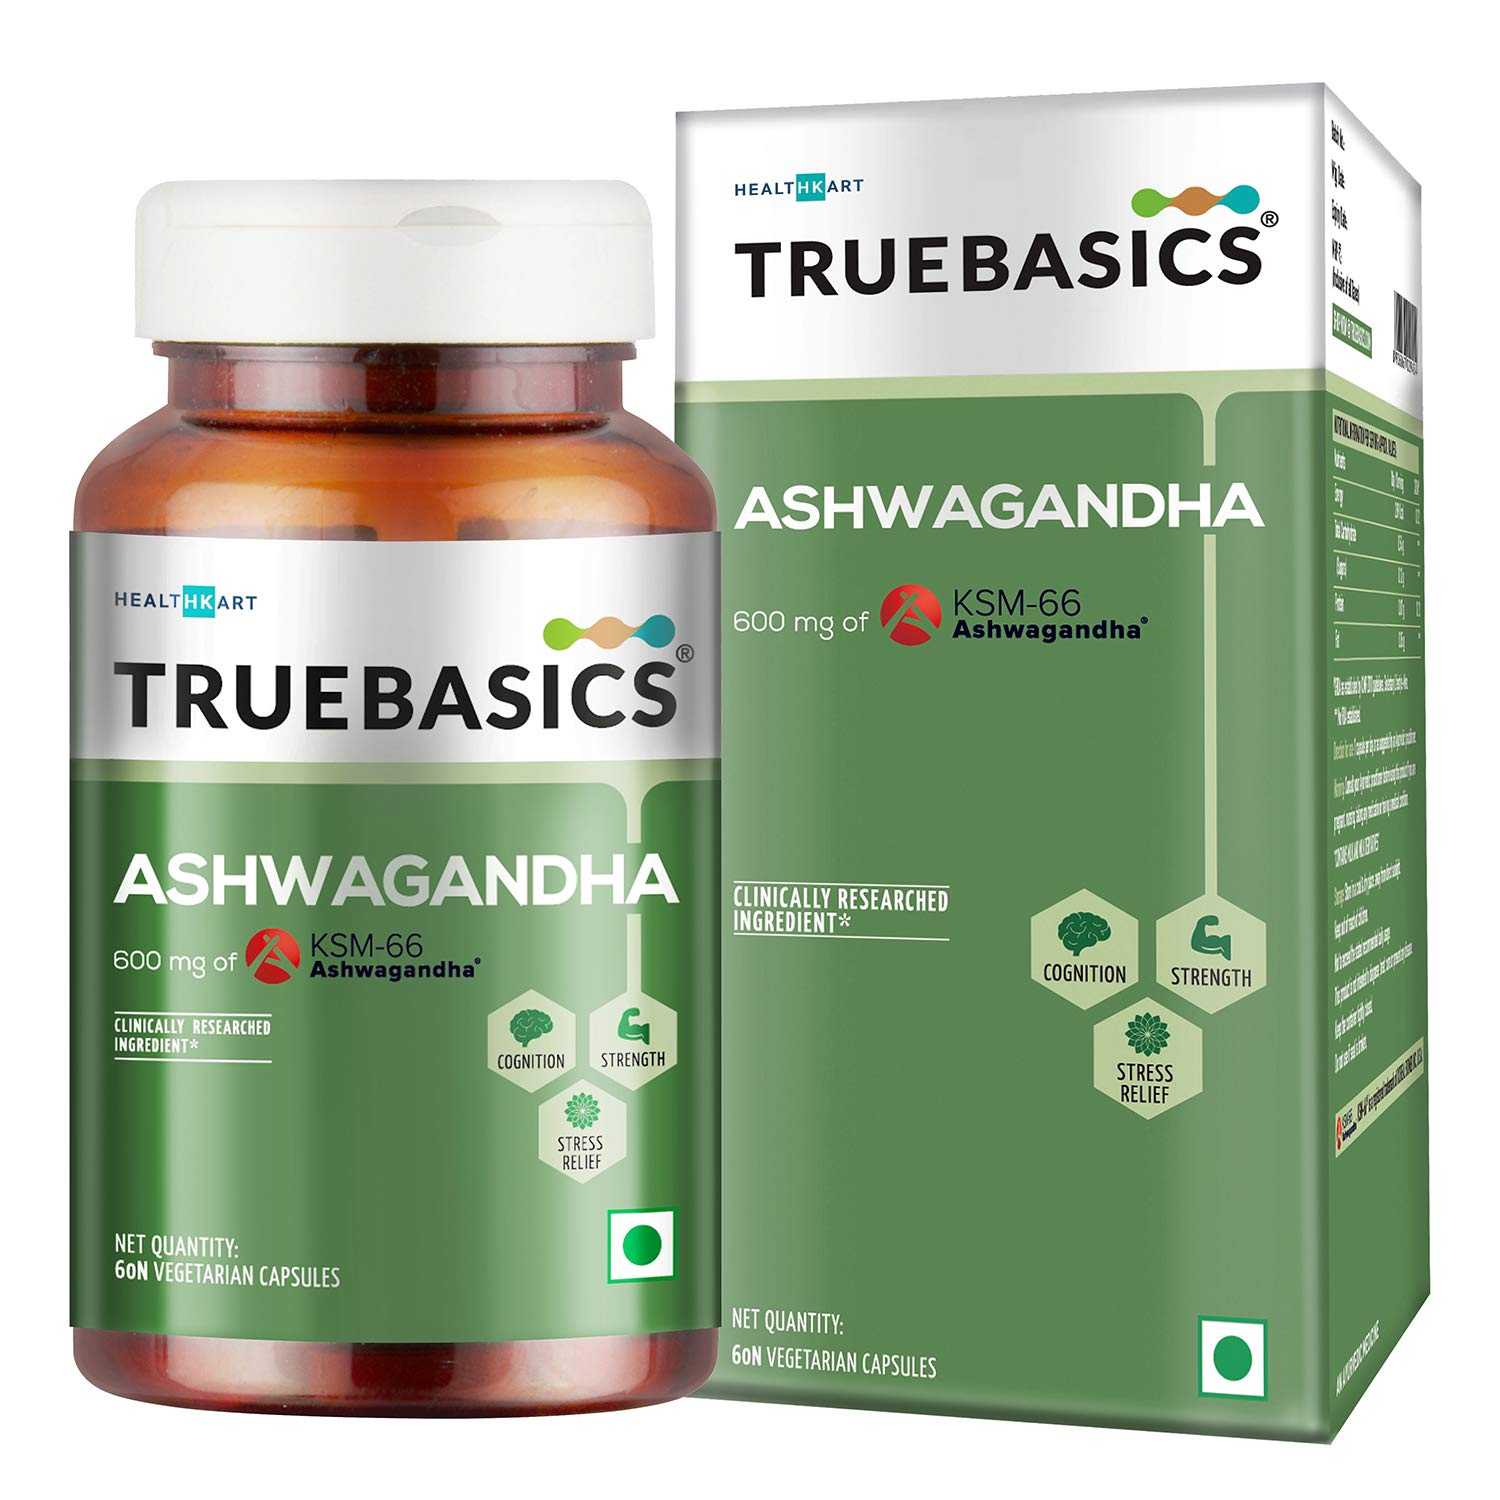 TrueBasics Ashwagandha || 600mg of KSM-66 Ashwagandha || General Health || Anxiety & Stress Relief || Energy & Endurance || Clinically Researched Ingredients || 60 Veg Capsules